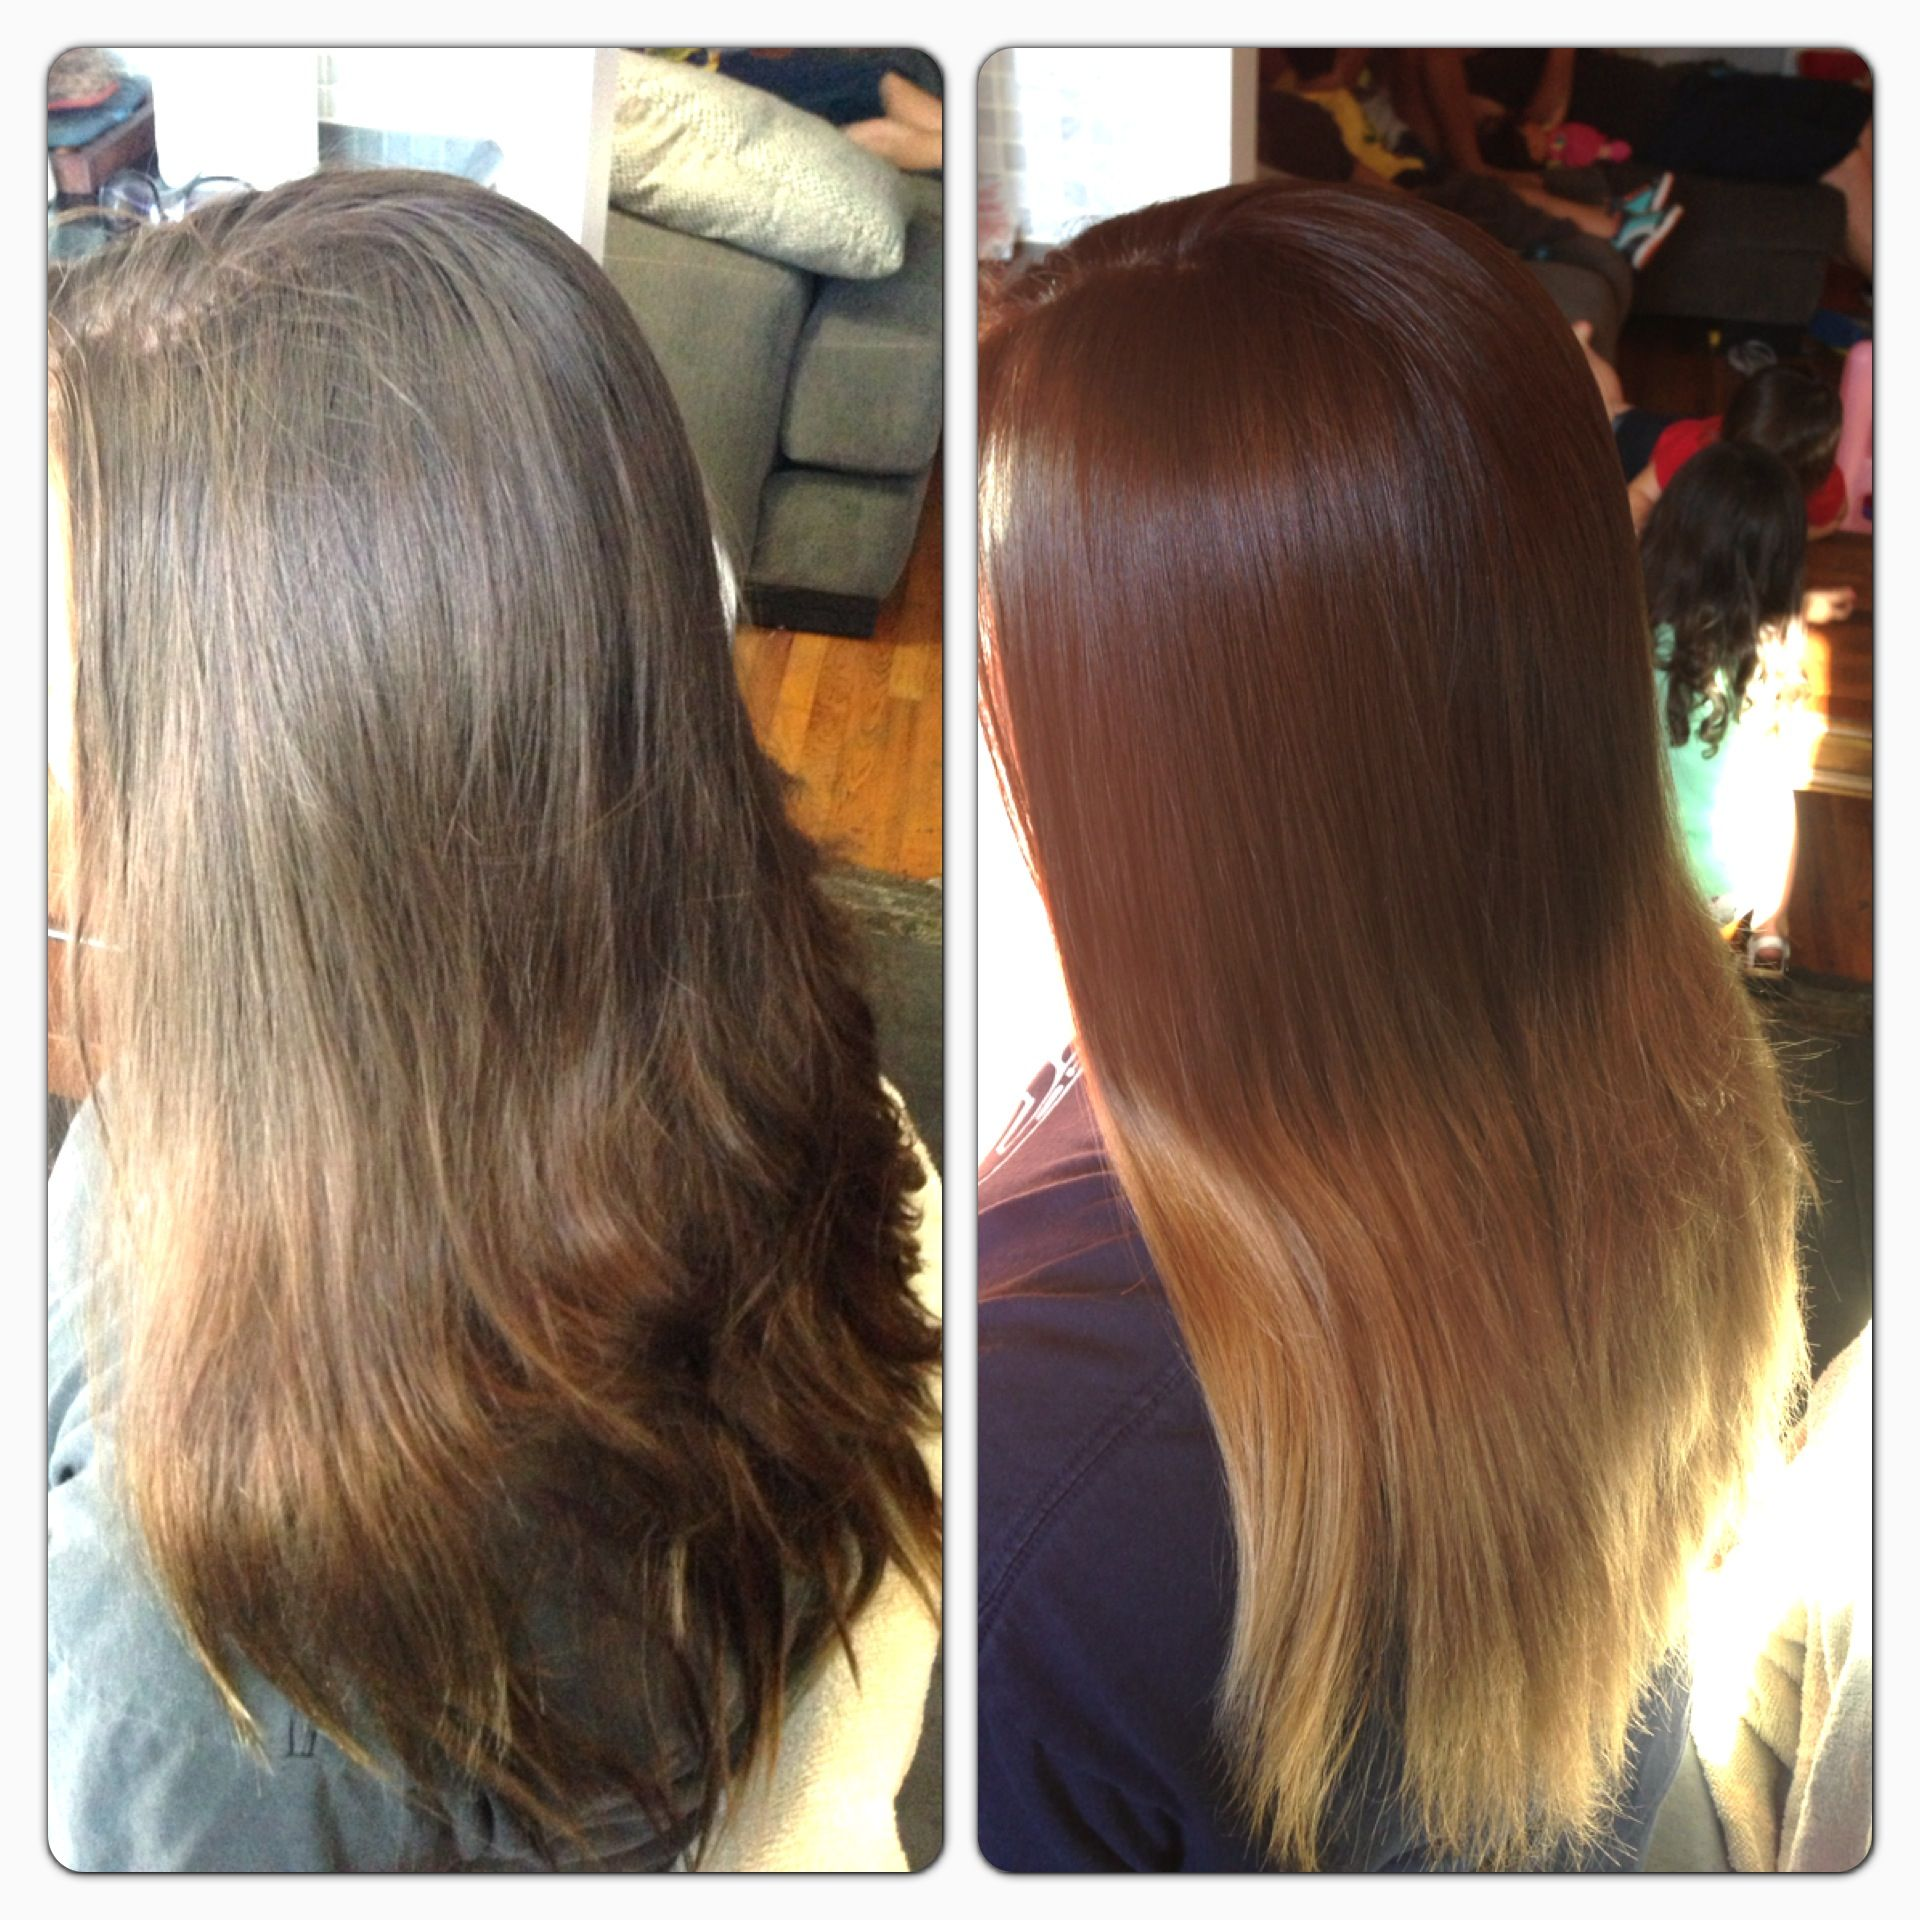 My Cousins Lovely Ombr For Summer Top Color Is Argan Oil Hair